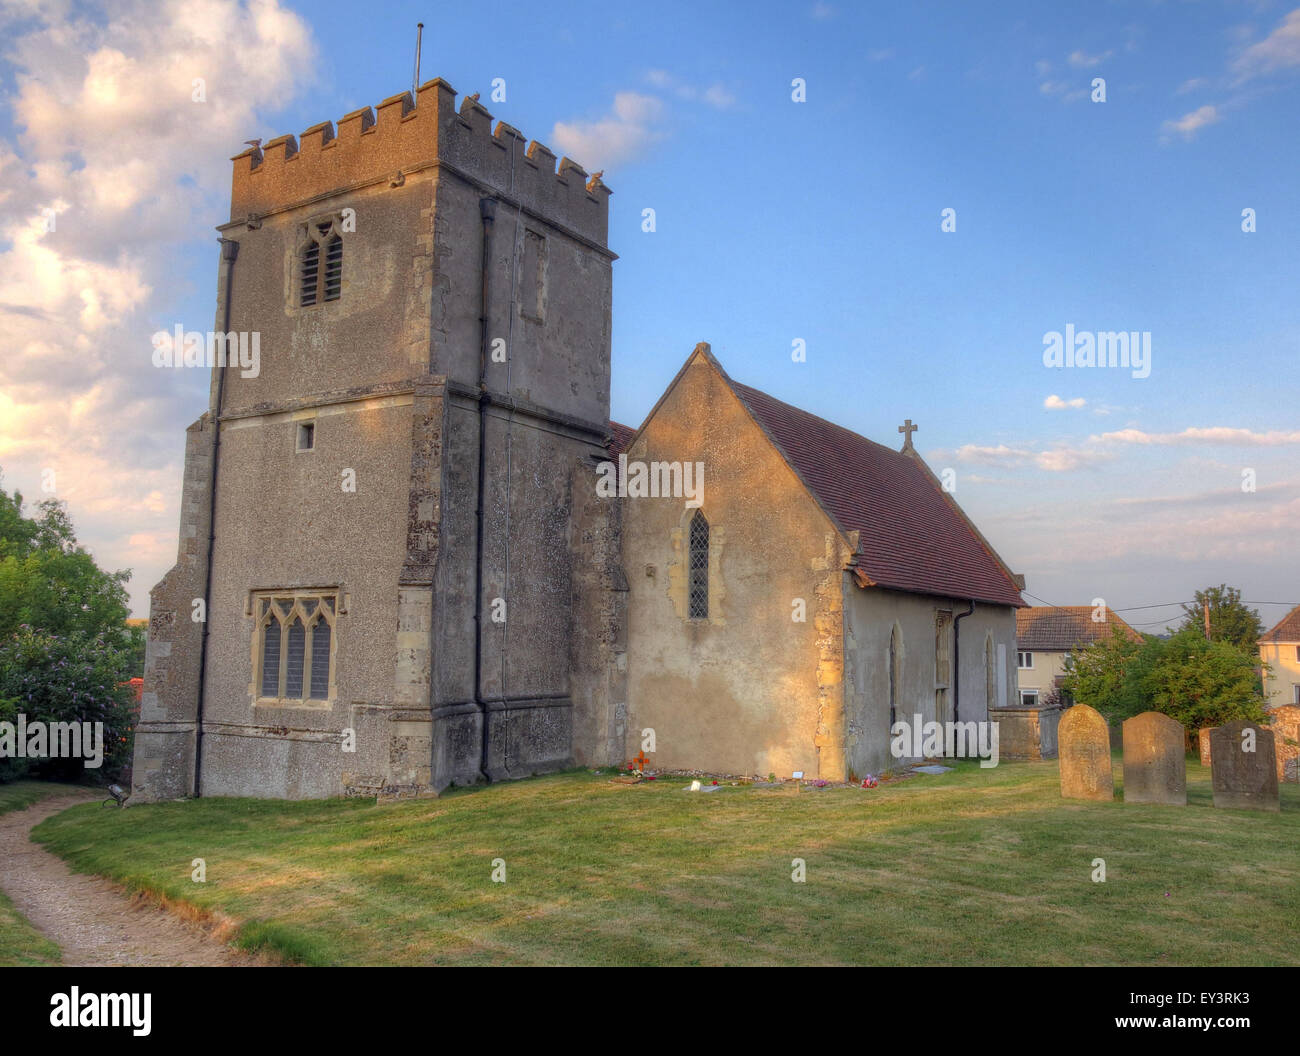 St,Saint,Marys,Marys,churches,ancient,church,chapel,tower,simple,grave,yard,graveyard,summer,dusk,GB,English,UK,in,the,evening,east,Ilsley,village,A34,Parish,Council,Ridgeway,scenic,medieval,stone,construction,partly,Norman,chancel,hill,St Mary,Saint Mary,English style chancel,Church Hill,GoTonySmith,villages,walk,walkers,walking,rural,country,countryside,grade,I,listed,Grade1,Lambourn,Downs,example,of,Newbury,Didcot,classic,English,British,village,town,Buy Pictures of,Buy Images Of,The Ridgeway,Grade I,Grade 1,Lambourn Downs,medieval stone construction,Example of,Classic English Village